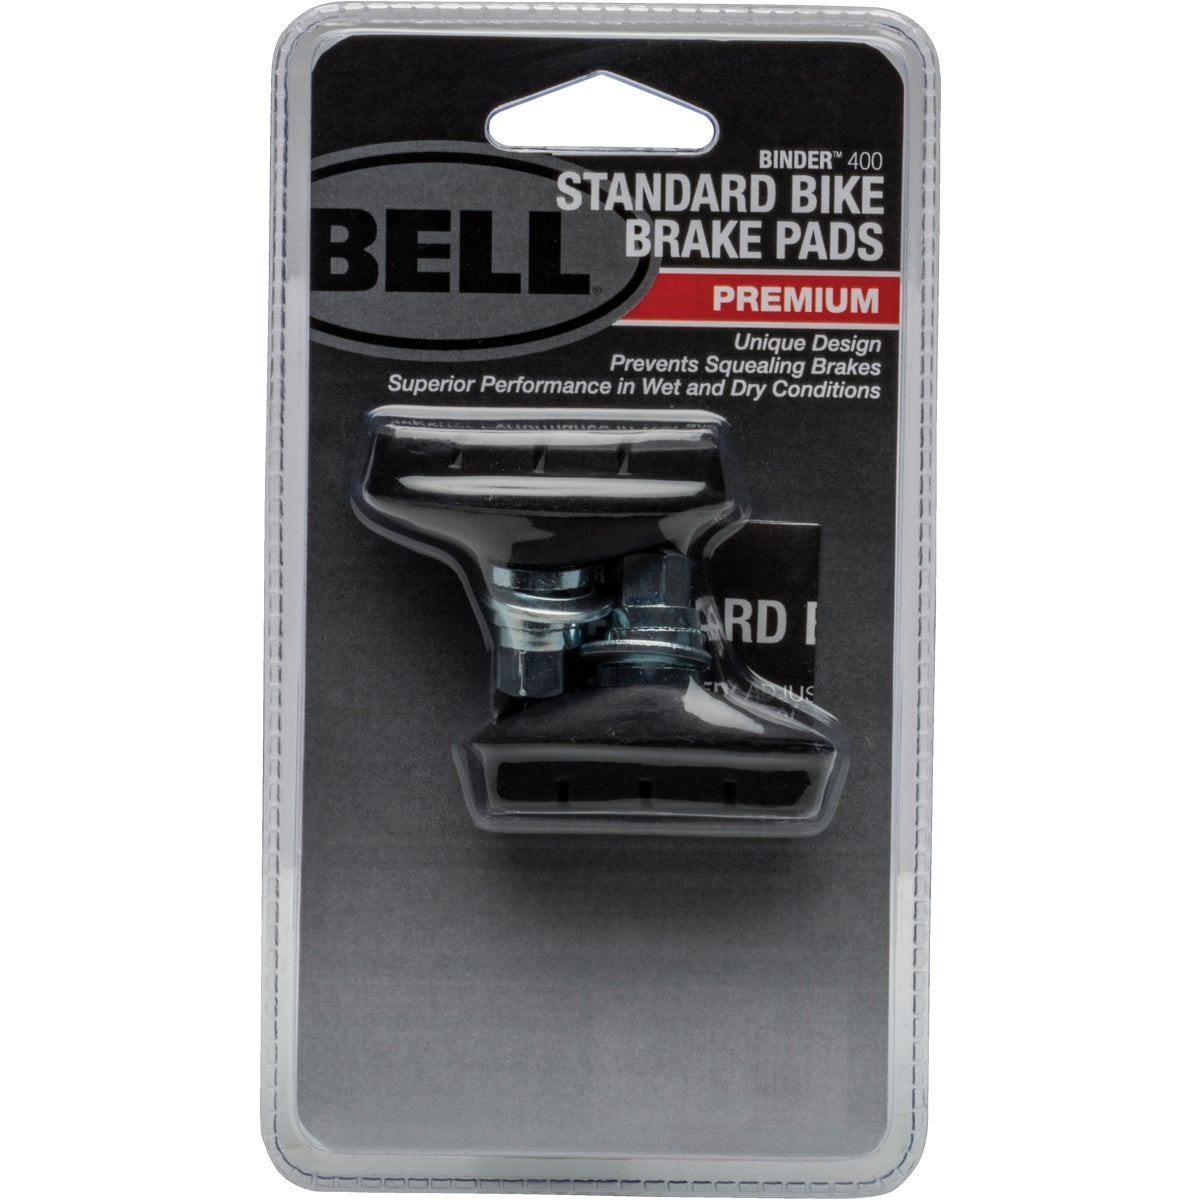 C STOP BRAKE PADS - 7015884 by Bell Sports